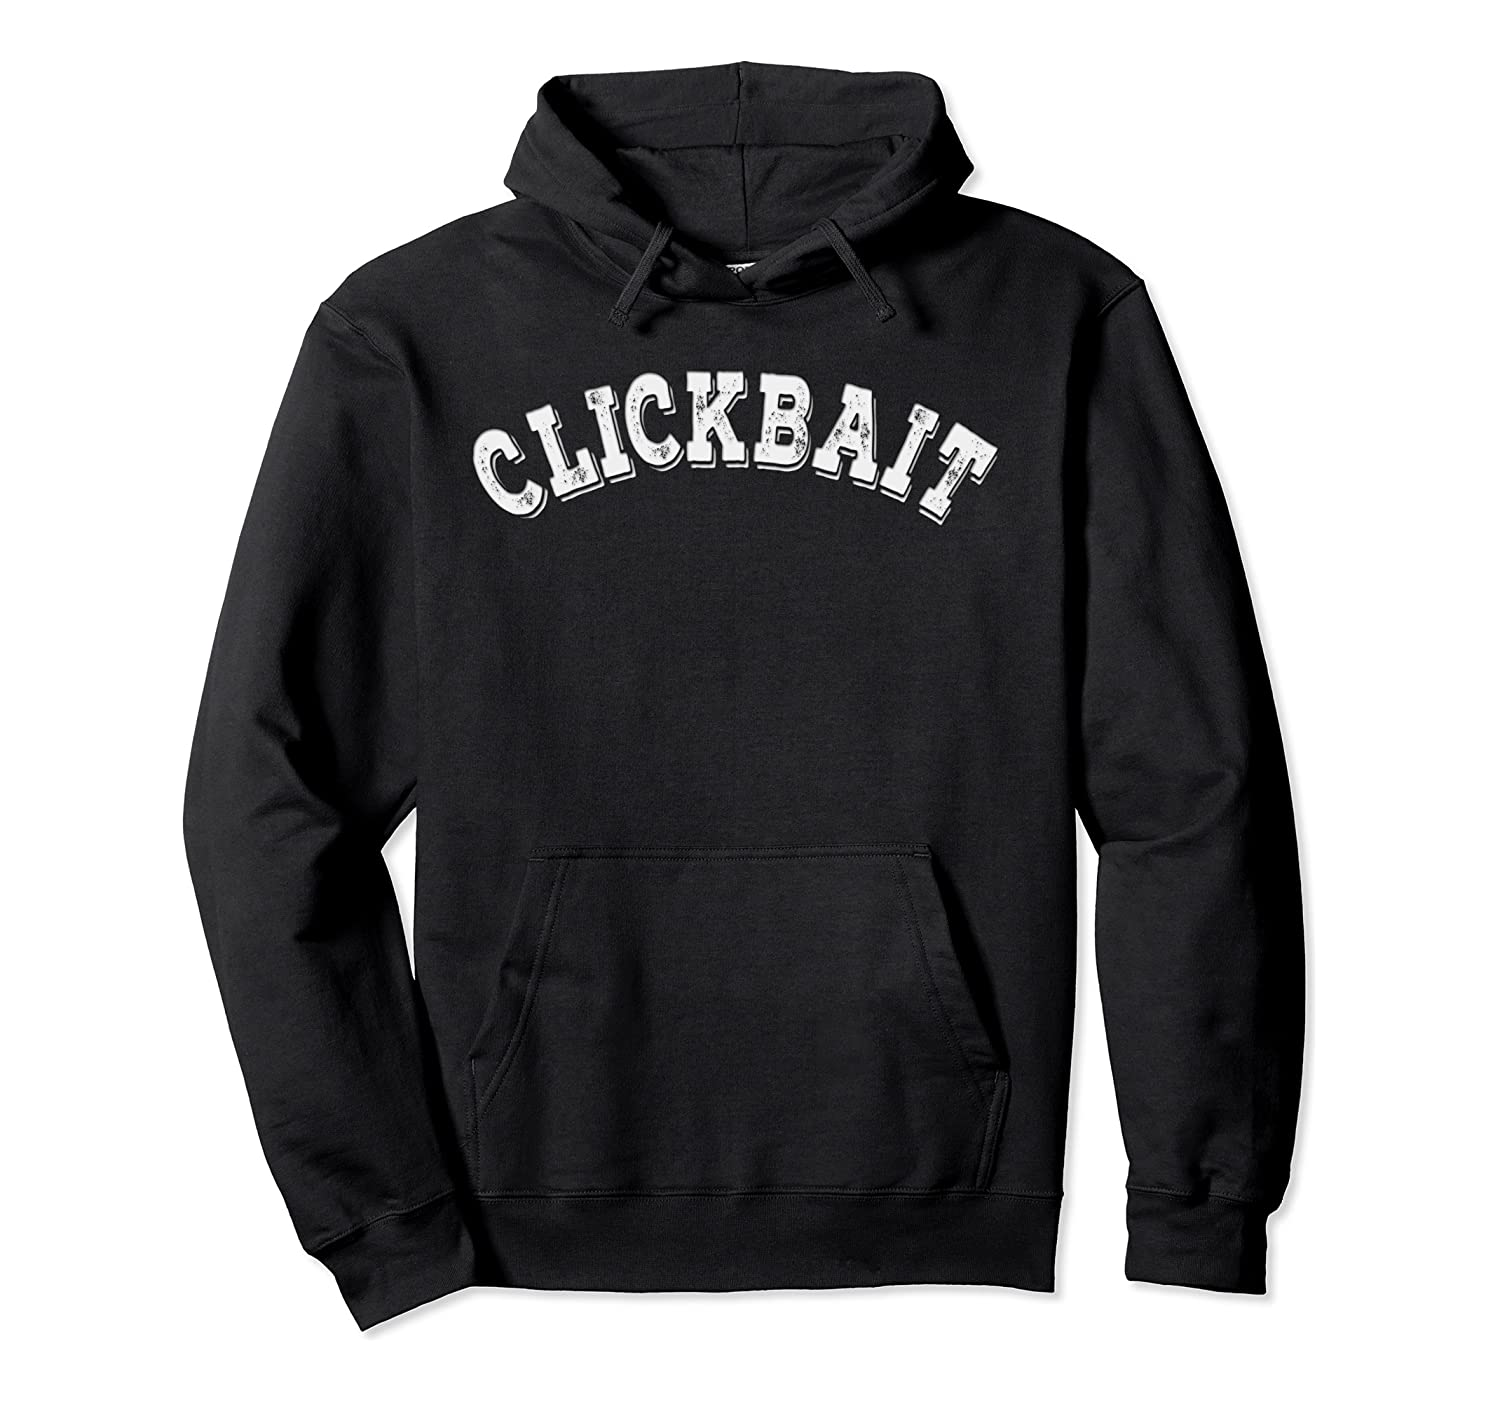 Clickbait Viral Pullover Hoodie (4 Color Options)